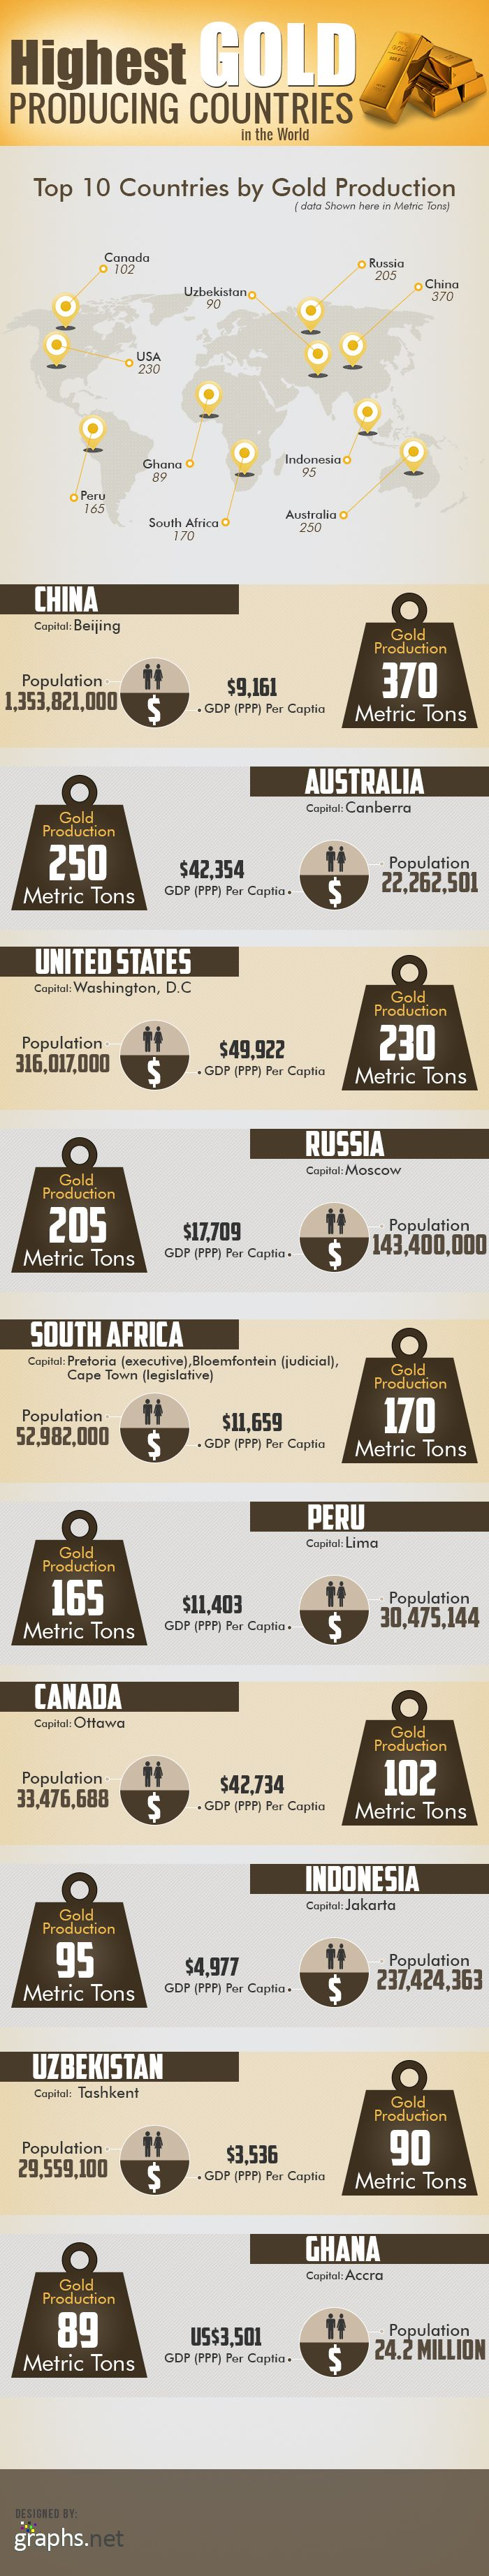 Highest Gold Producing Countries In The World [infographic] #highest #gold